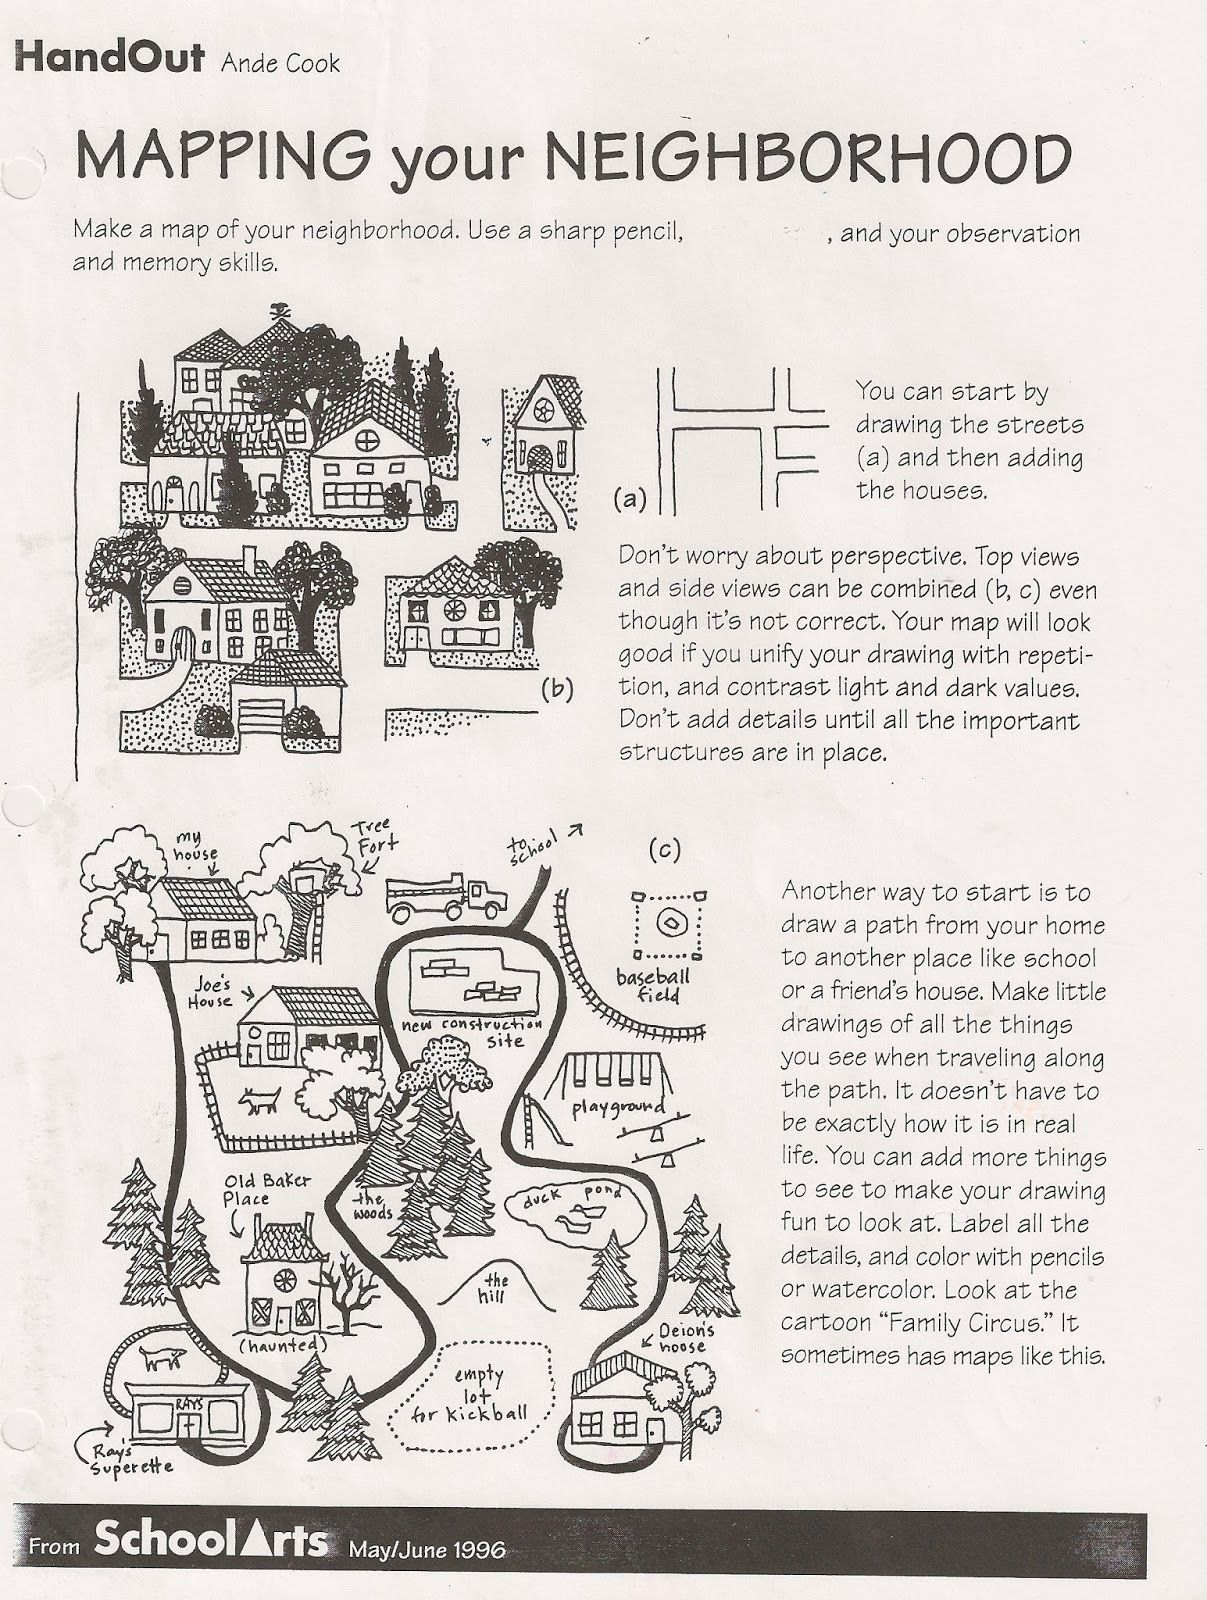 Free Ande Cook S Mapping Your Neighborhood Handout And